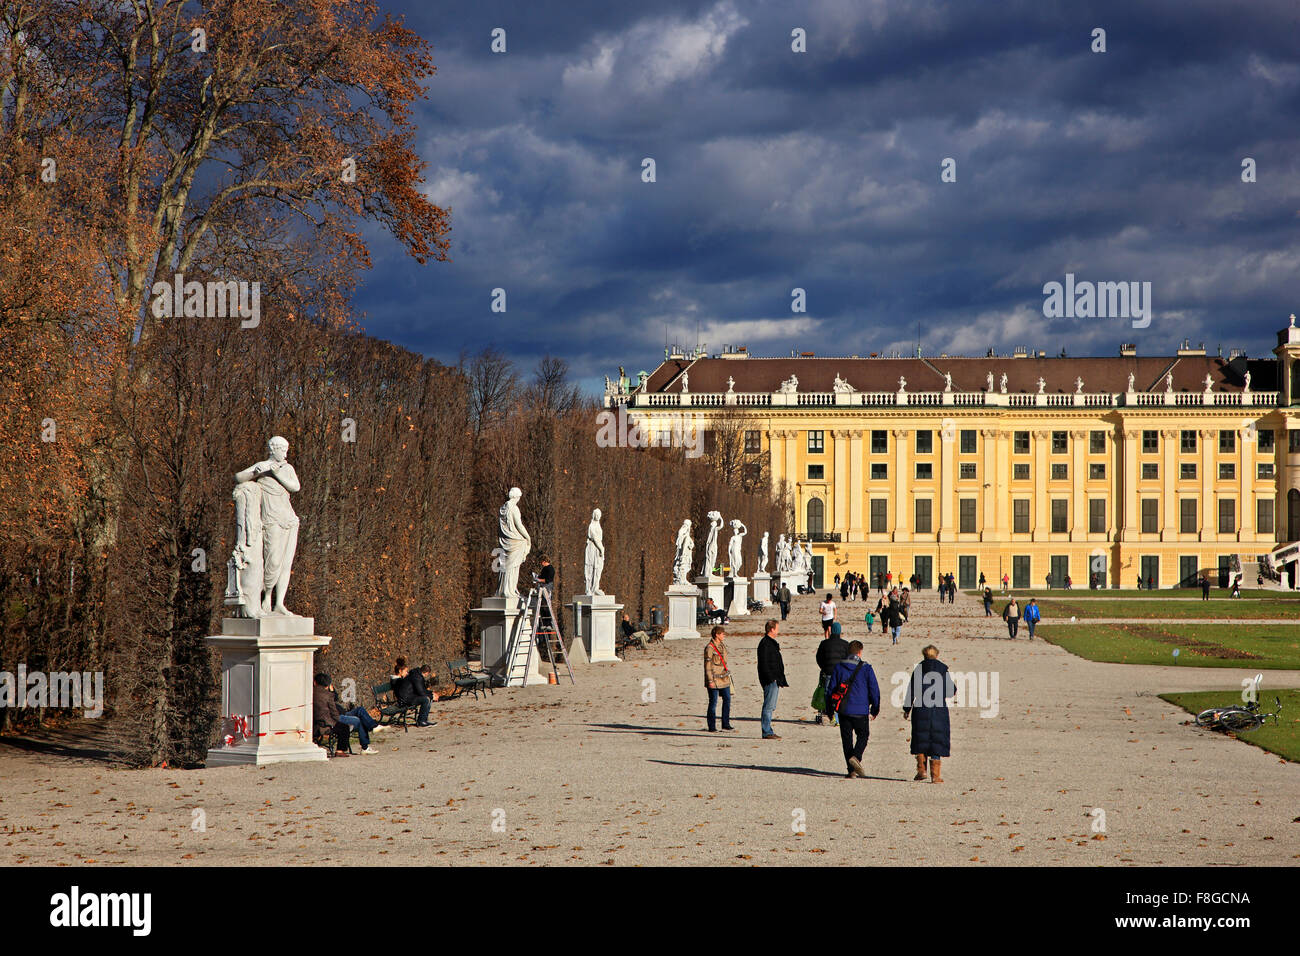 View from the gardens of Schönbrunn palace, summer palace of the Habsburgs Vienna, Austria. - Stock Image